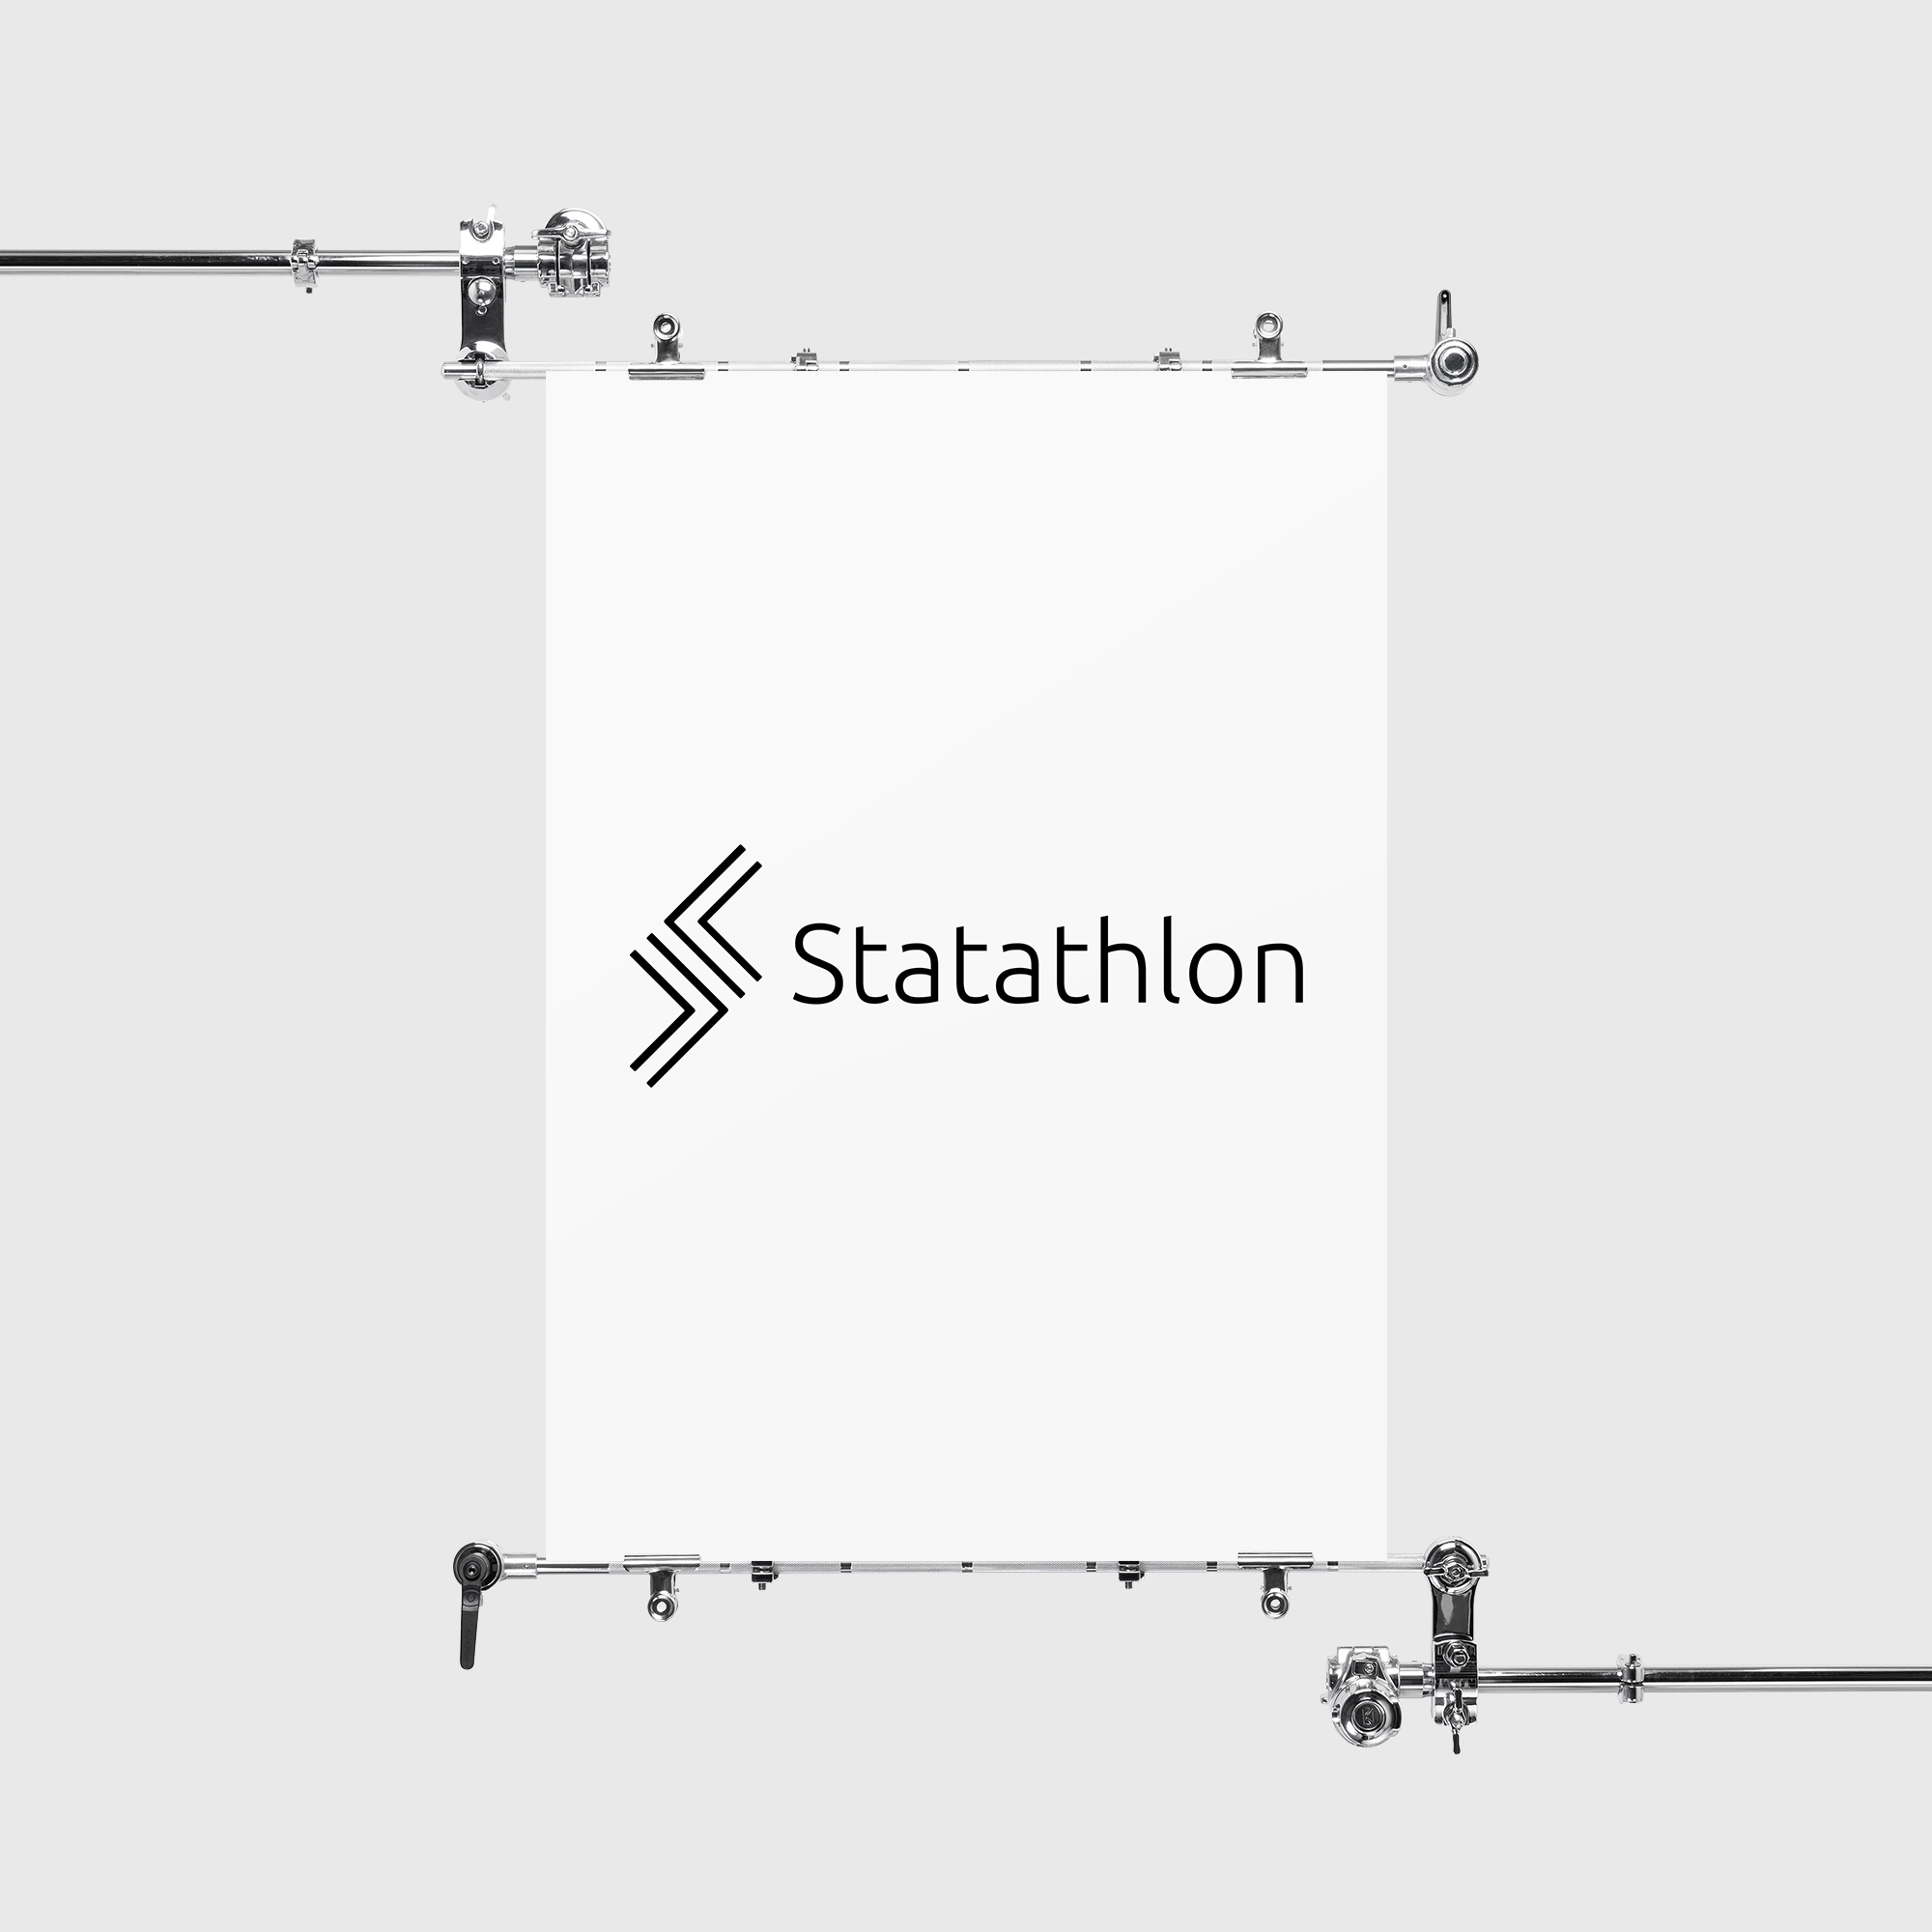 Statathlon logo hanging on a banner